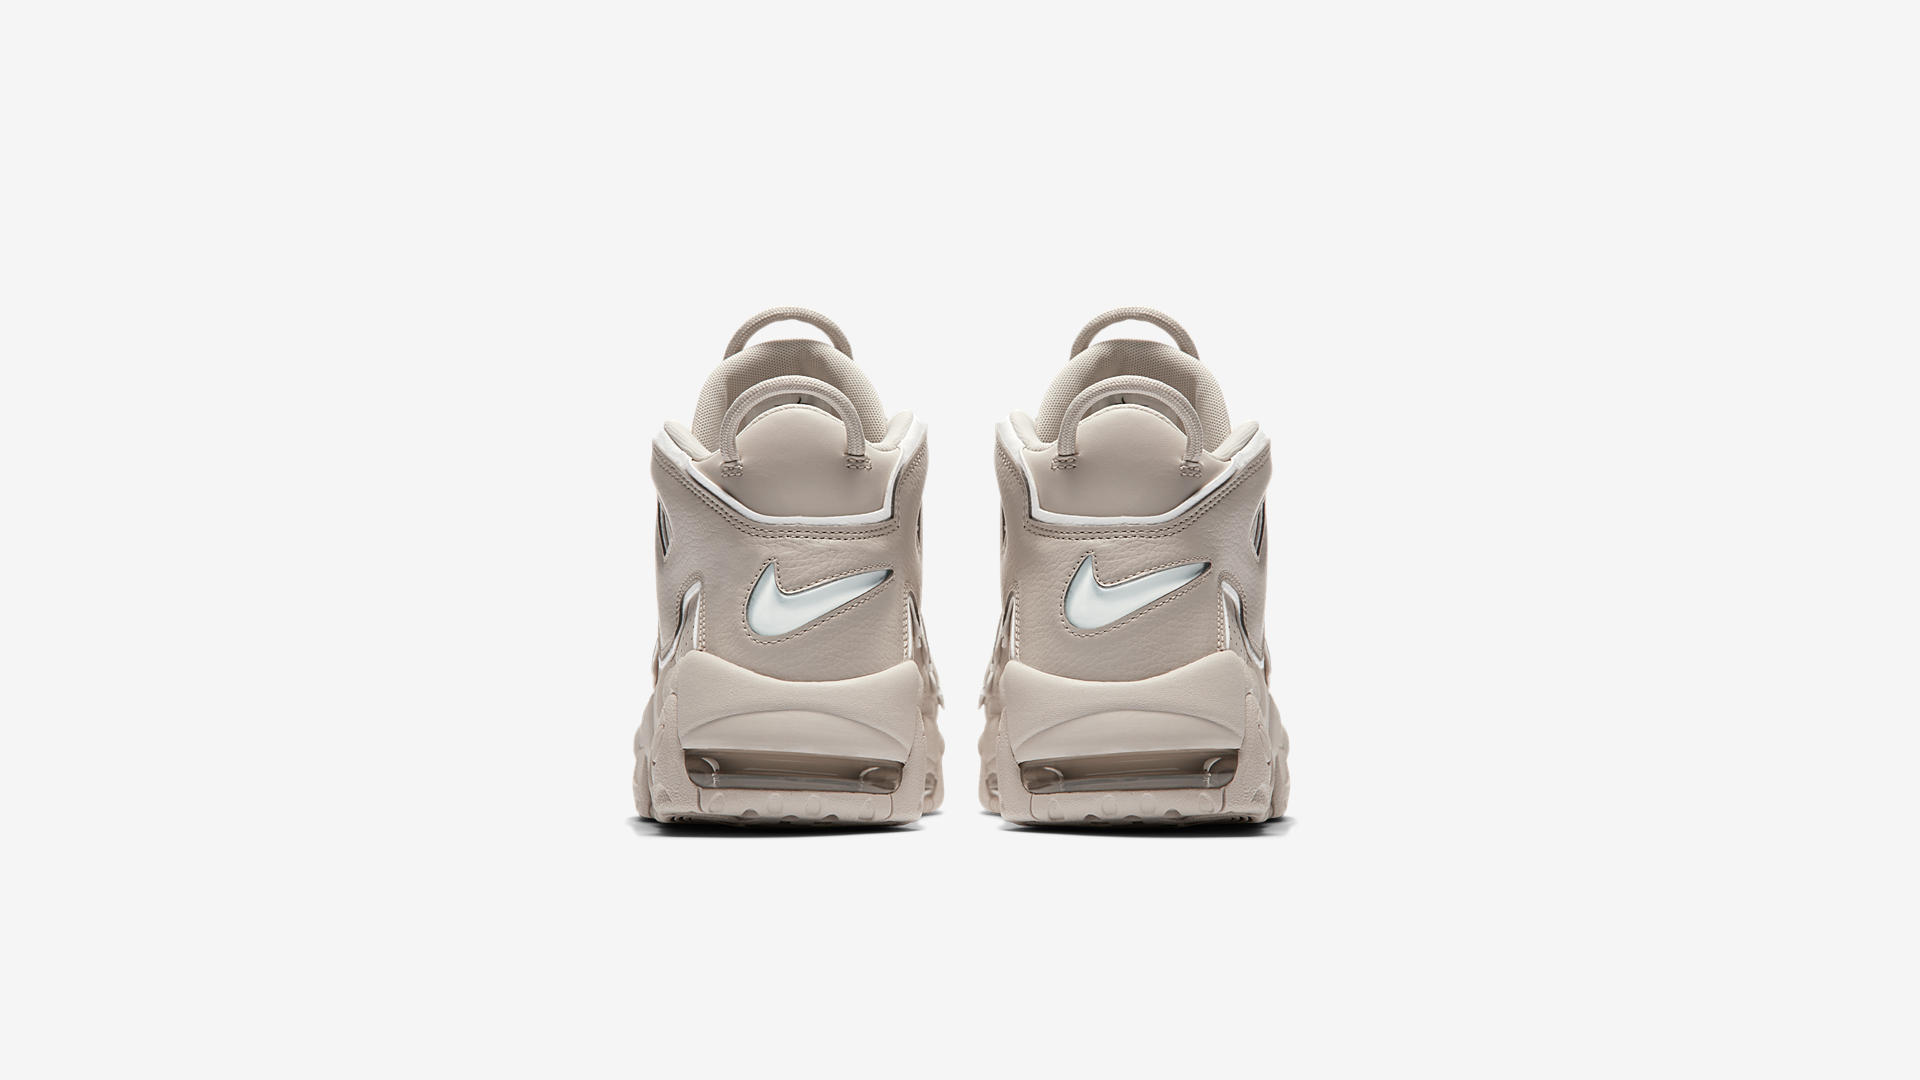 921948 001 Nike Air More Uptempo Light Bone 2